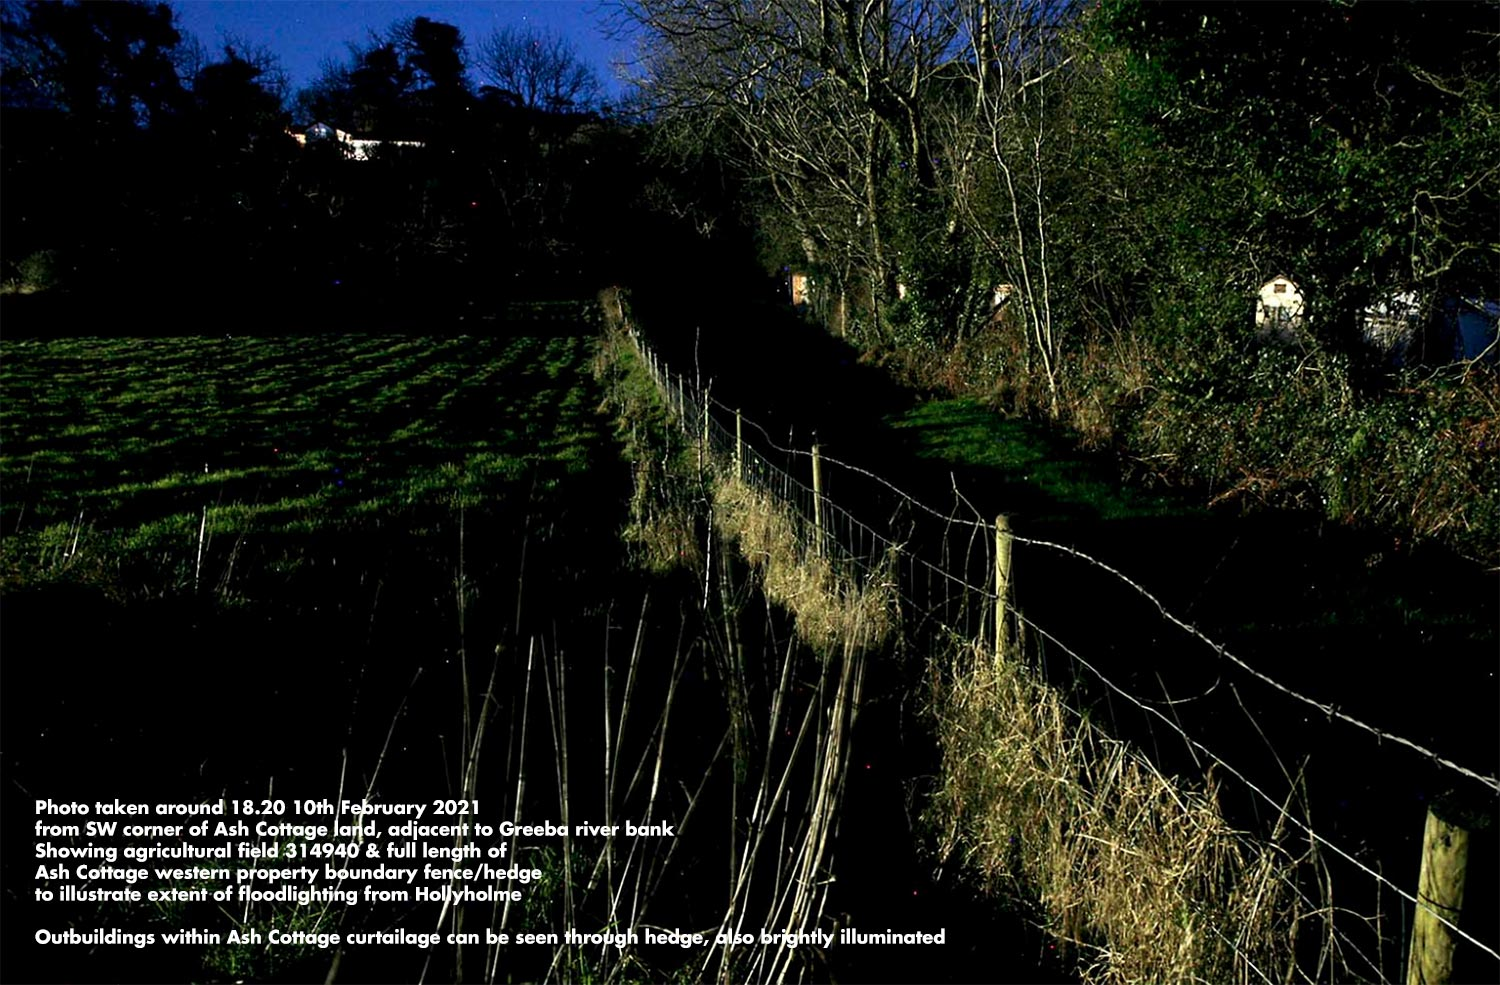 From SW corner of Ash Cottage land, adjacent to Greeba river bank. Showing agricultural field 314940 & full length of Ash Cottage western property boundary fence and hedge to illustrate the extent of floodlighting from Hollyholme